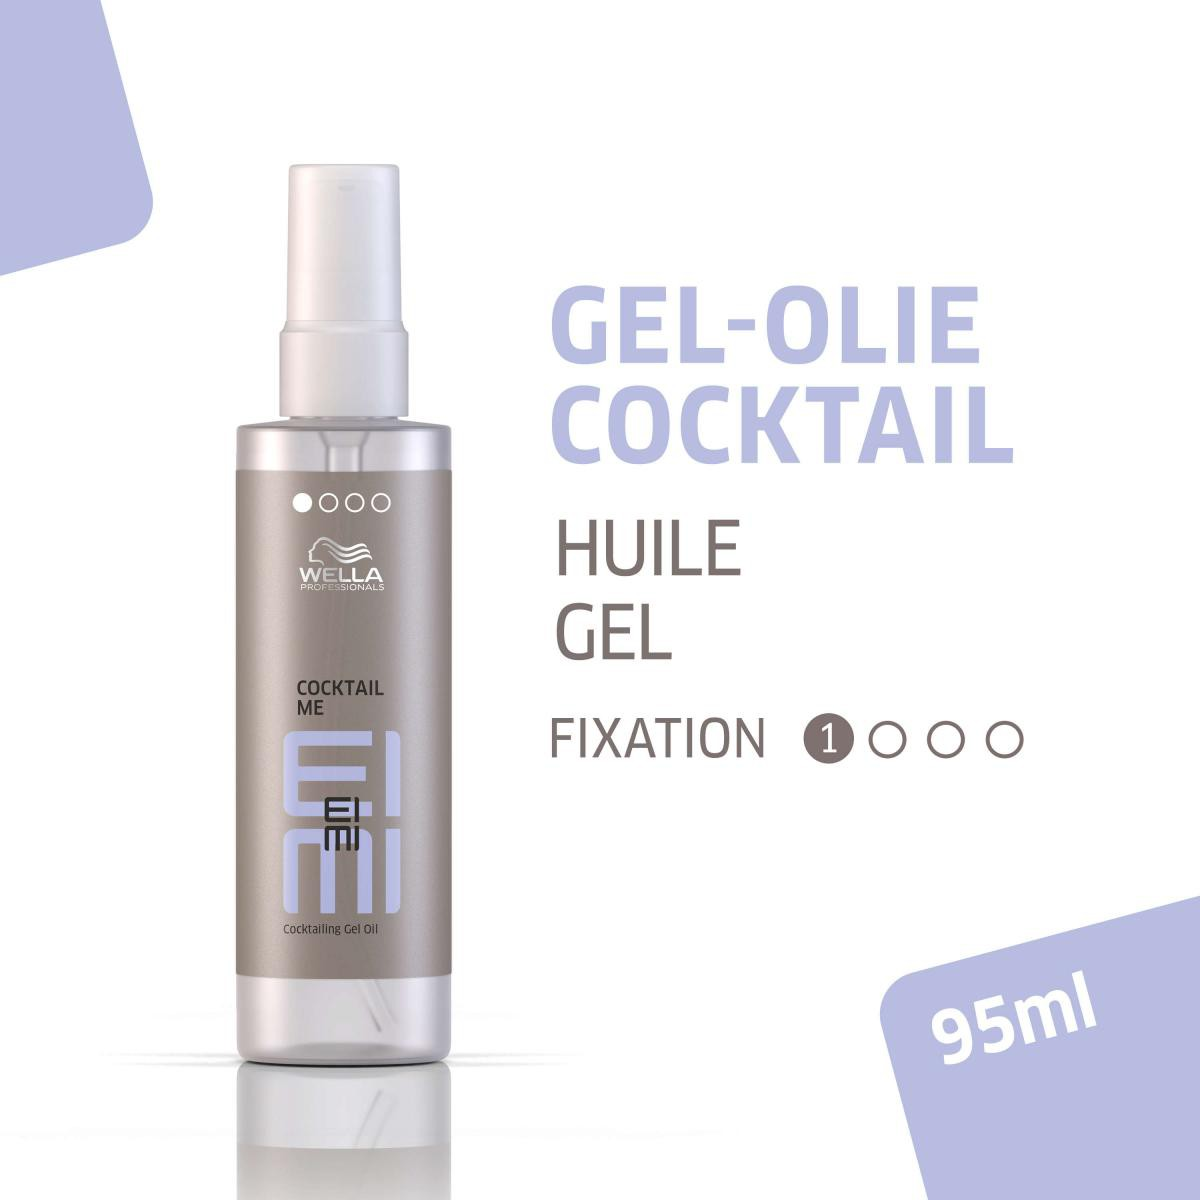 Huile Gel - Cocktail Me